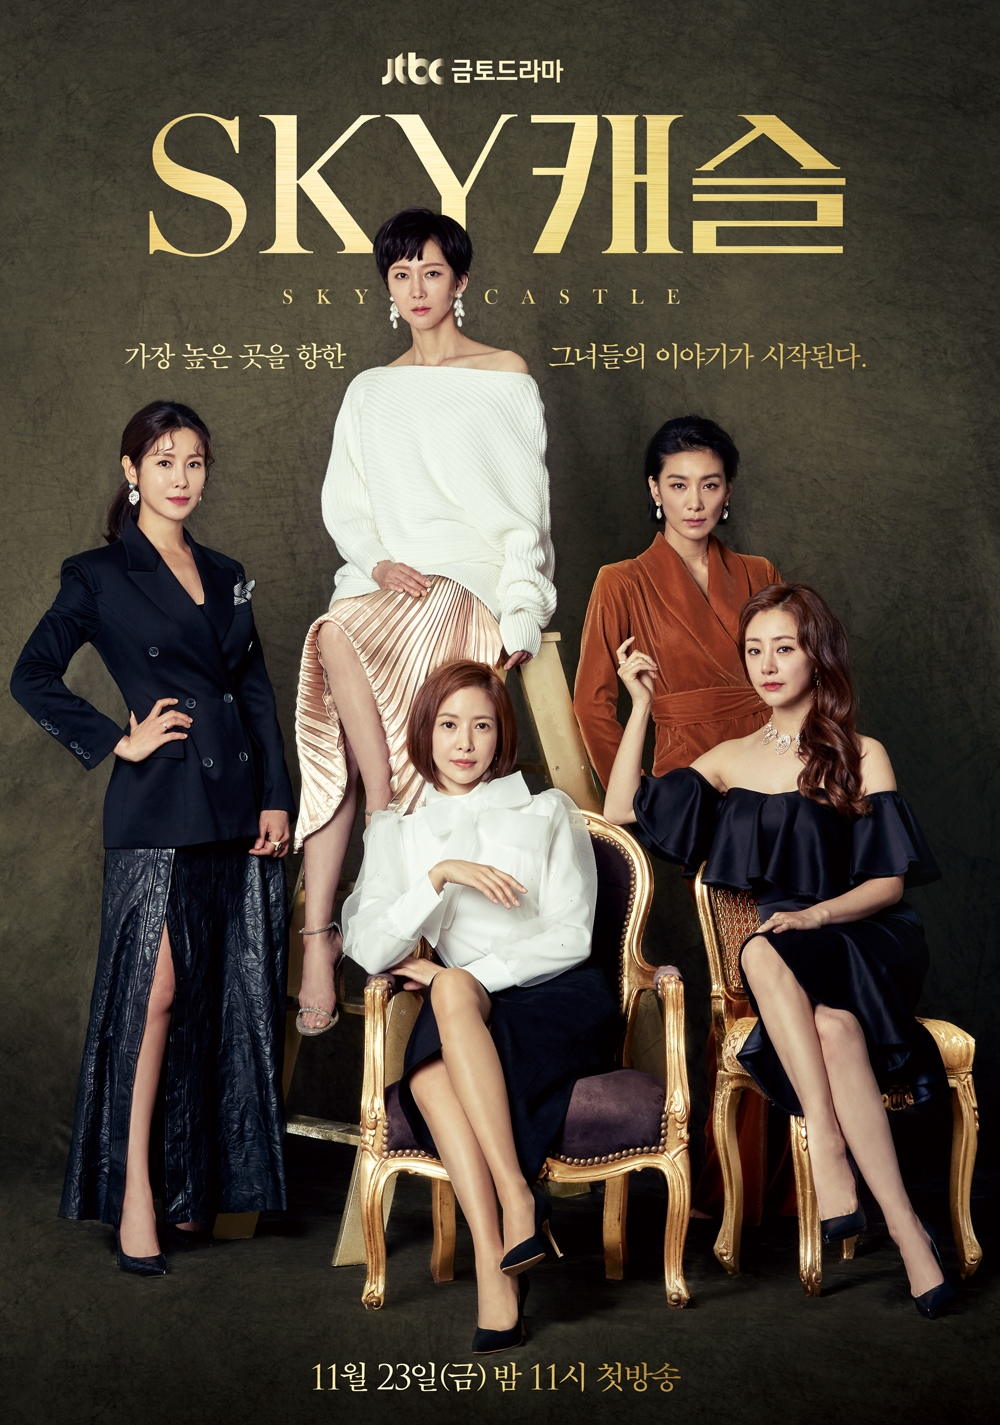 A satirical drama that closely looks at the materialistic desires of the upper-class parents in South Korea and how they ruthlessly secure the successes of their families at the cost of destroying others' lives.